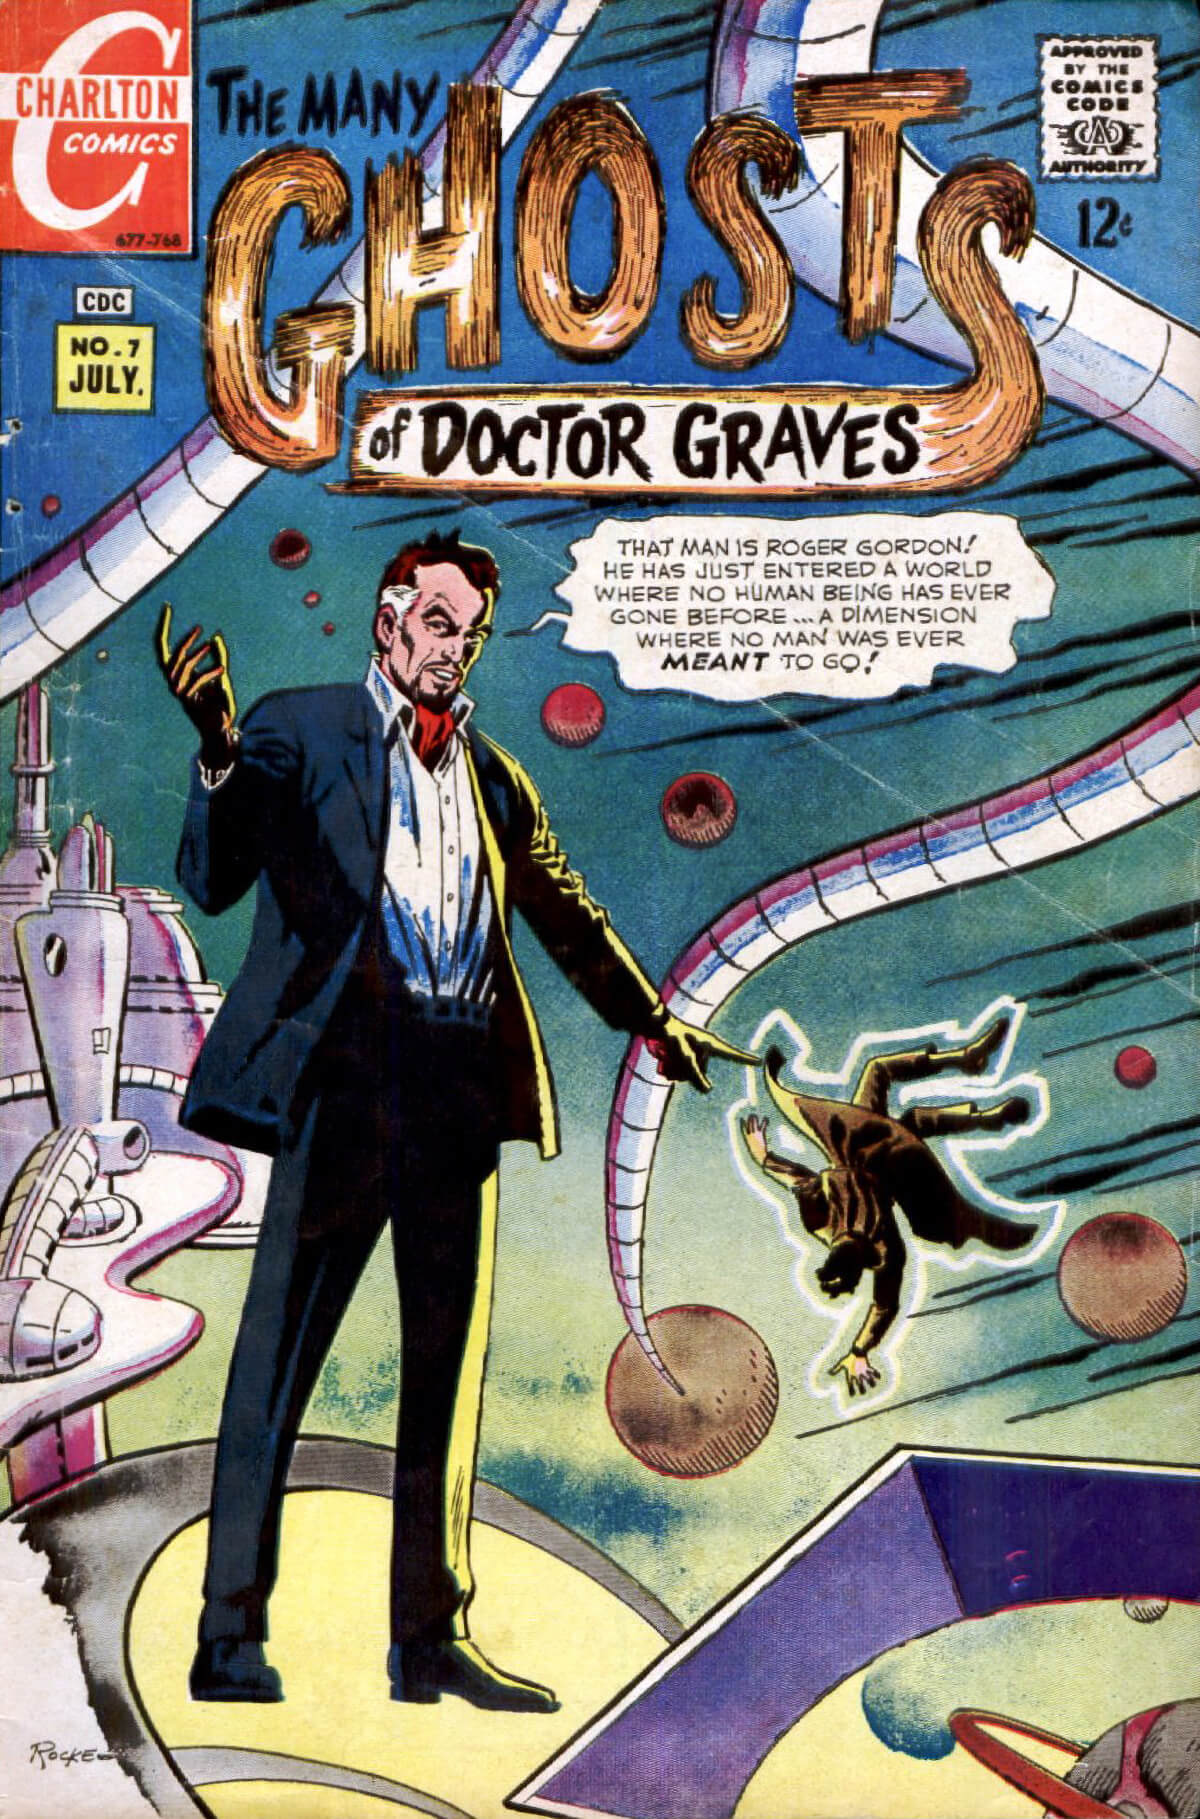 Charlton Comics Many Ghosts Of Dr Graves 7